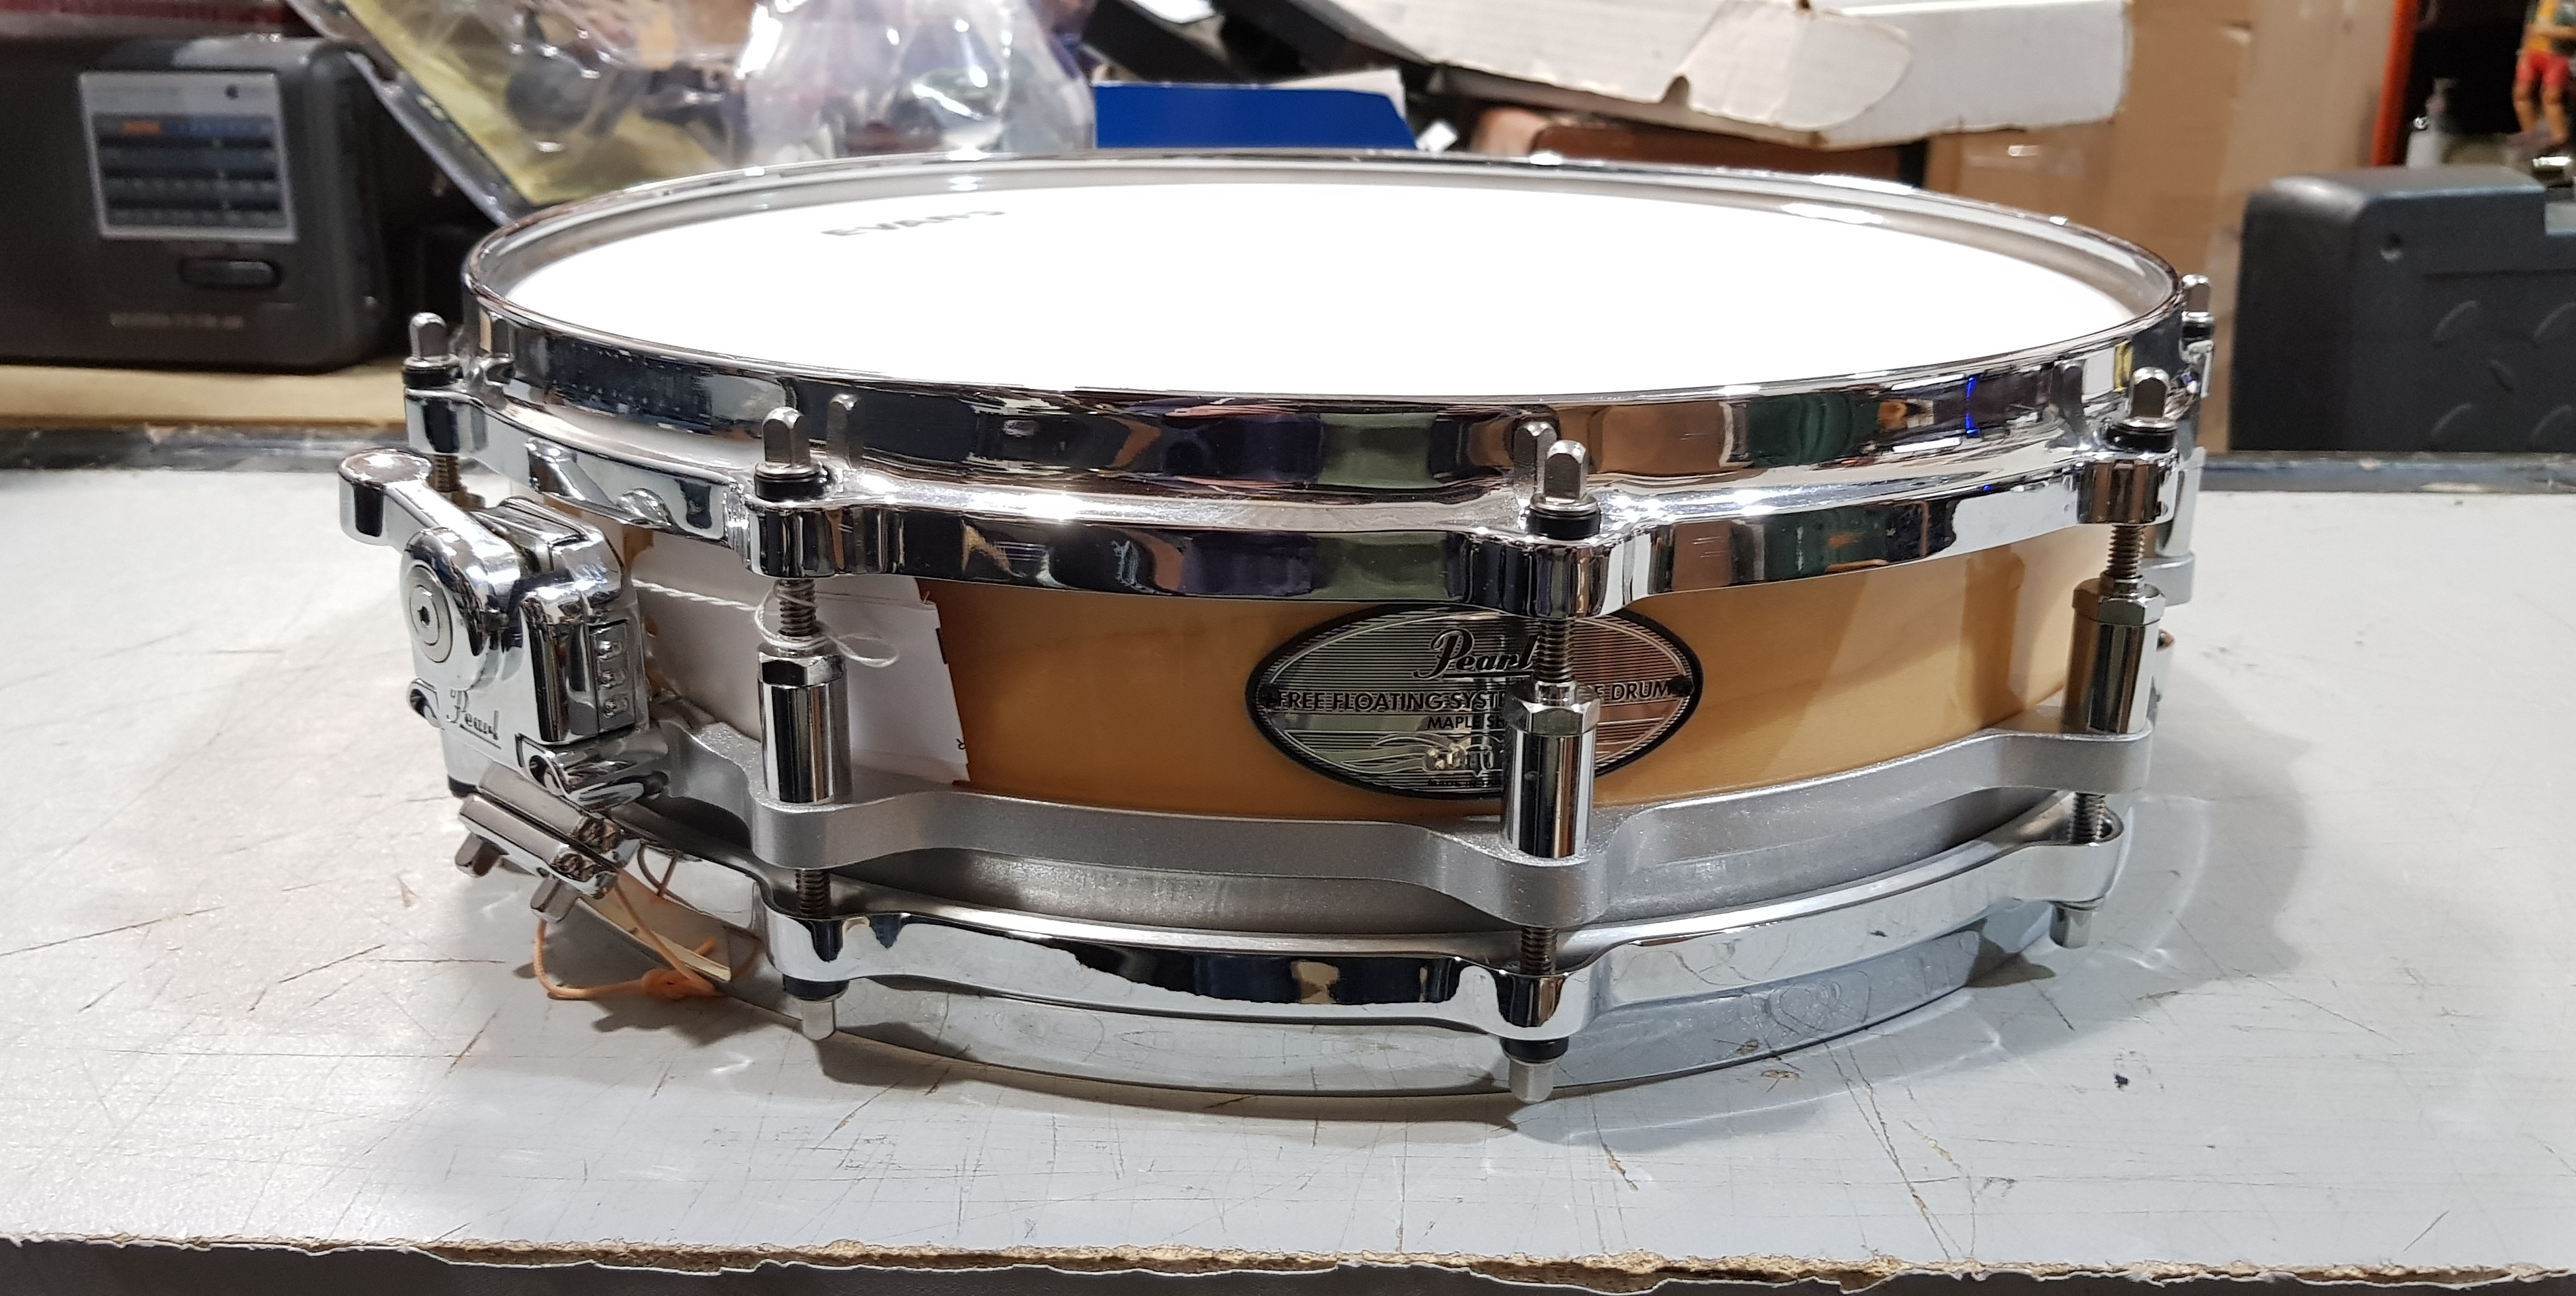 PEARL FREE FLOATING PICCOLO Snare Drum - Maple Shell - 14